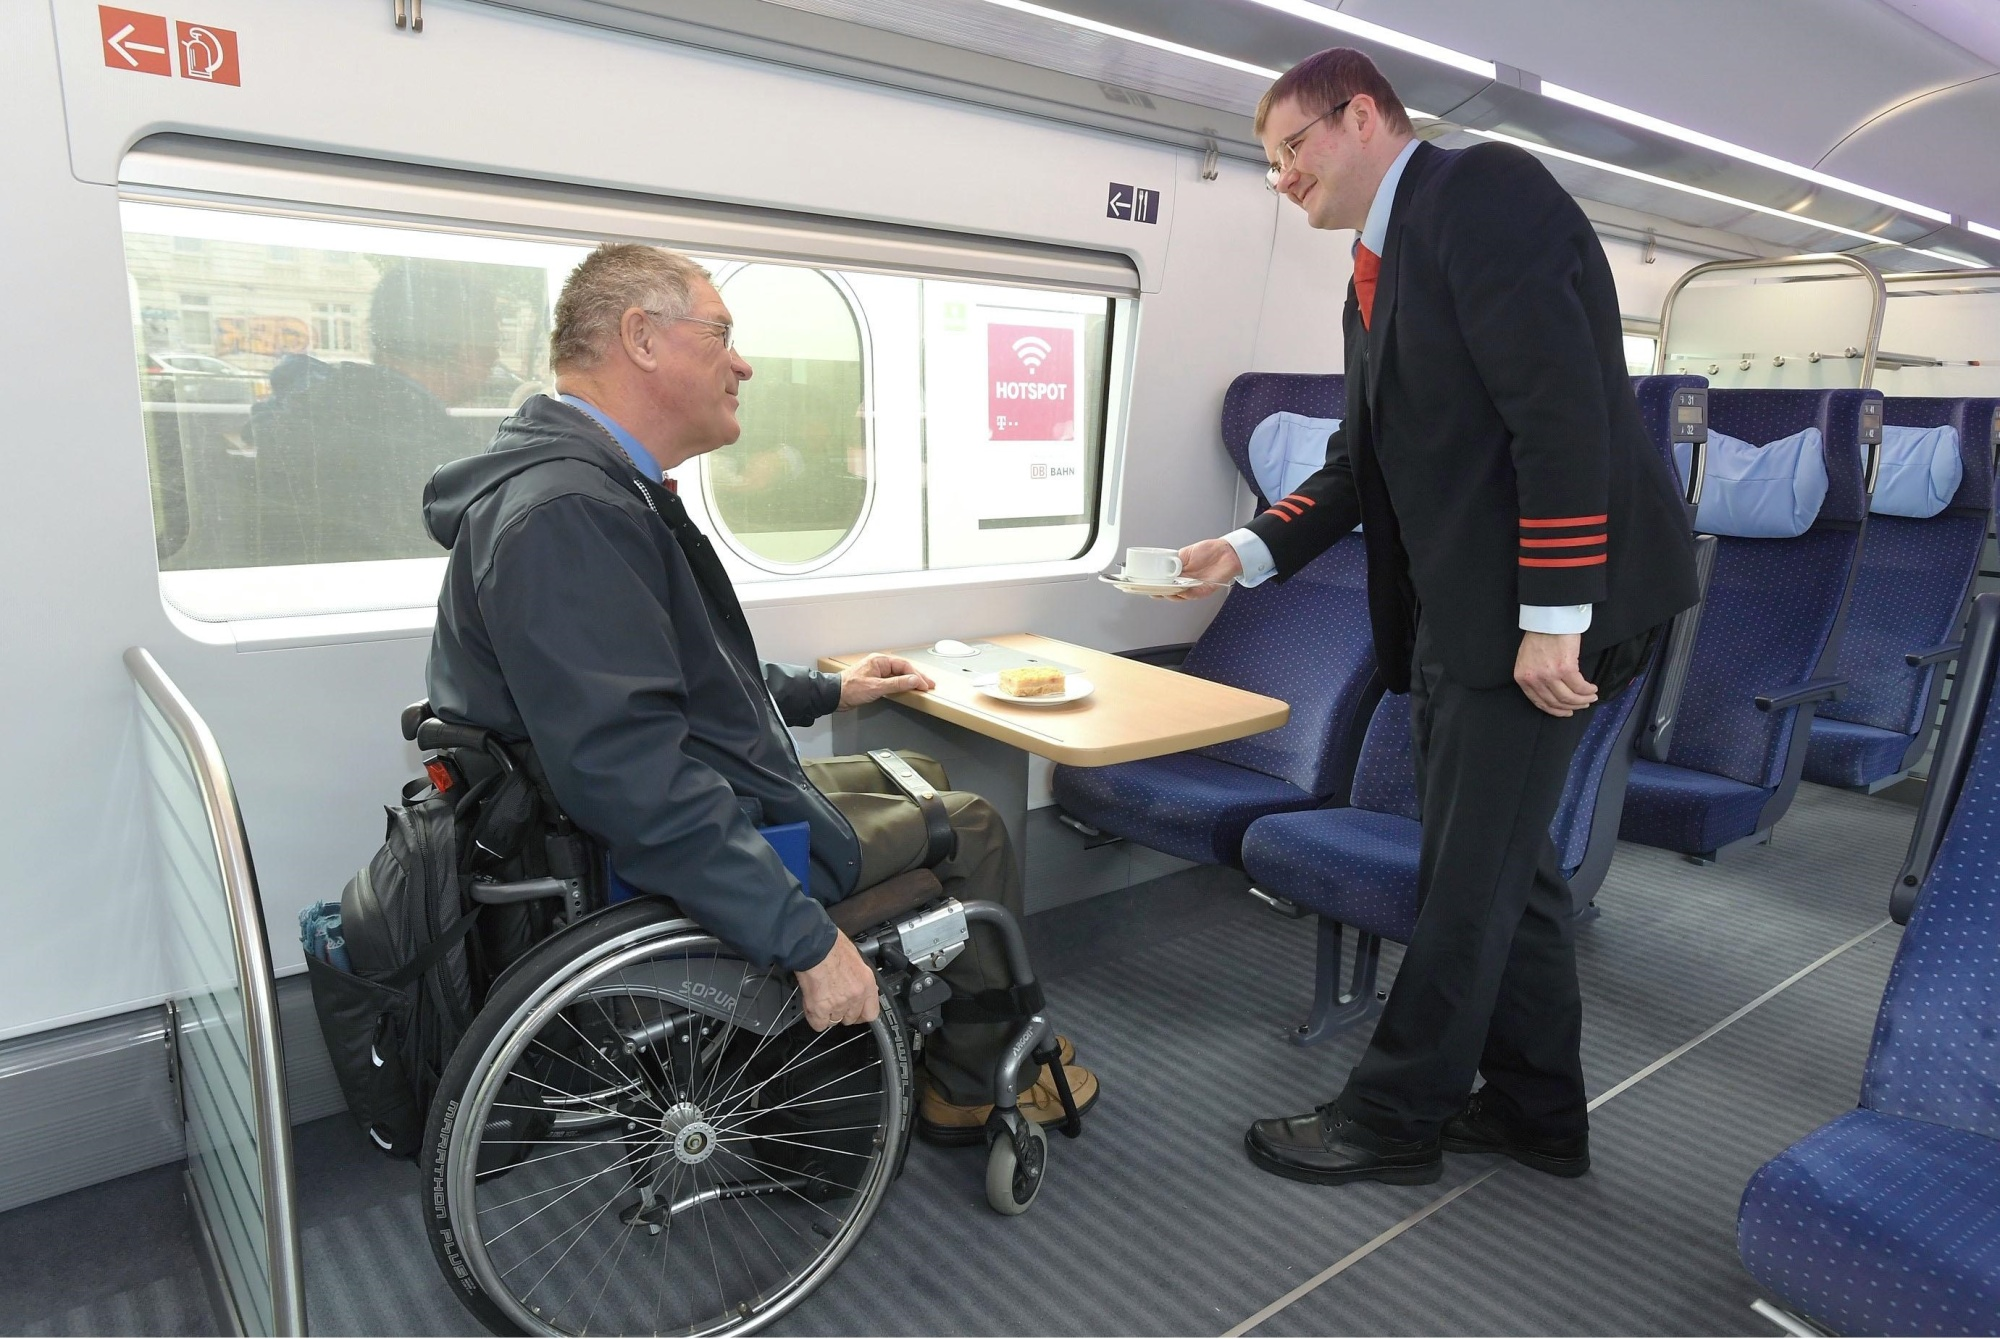 An undated provided photo shows space for wheelchair users inside an express train in Germany. Japan's transport ministry plans to create similar spaces inside shinkansen trains. | KYODO